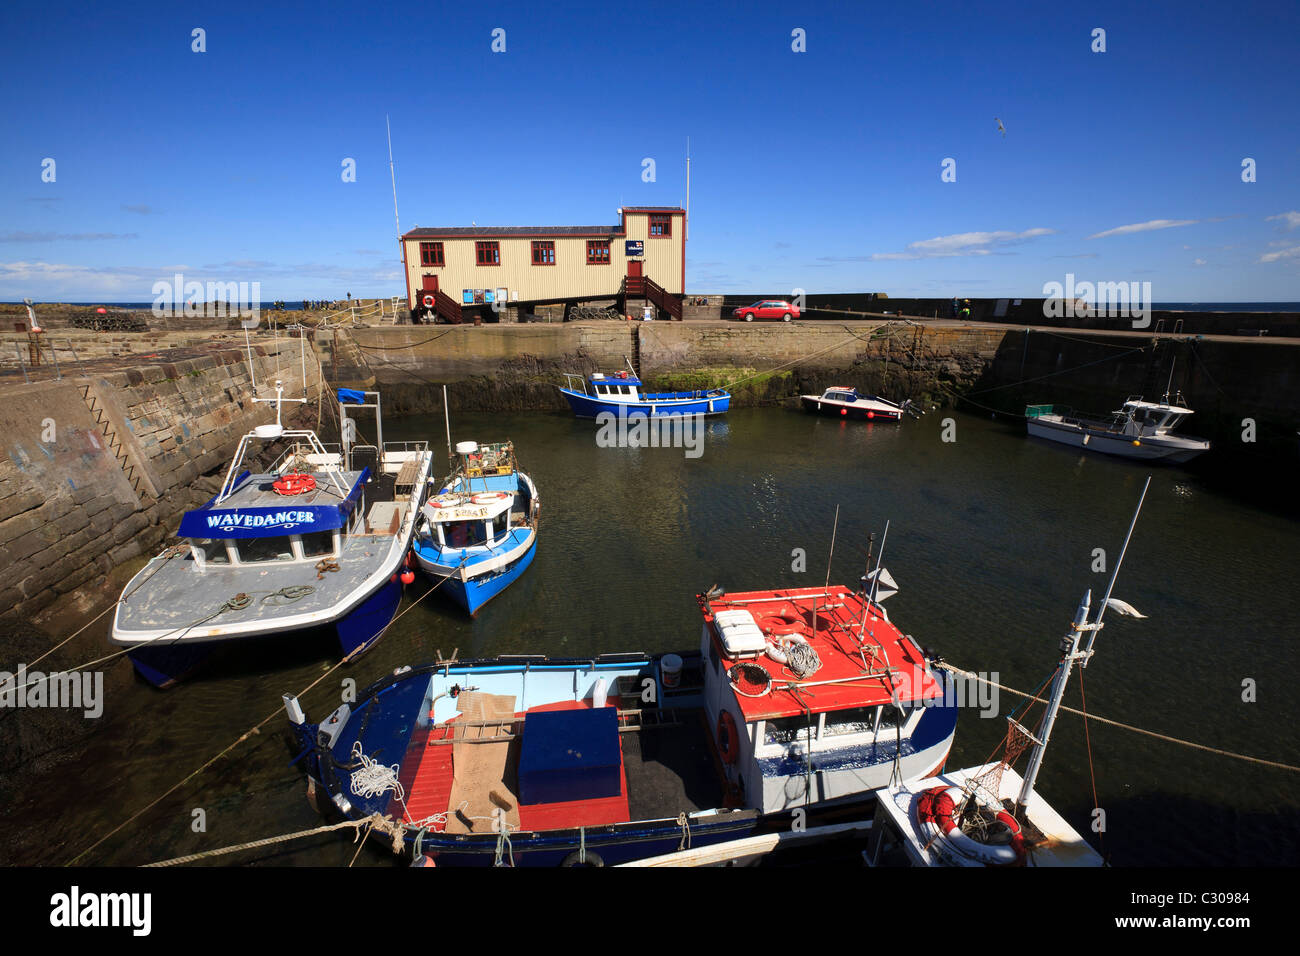 The lifeboat station and boats in the harbour at St. Abbs, Berwickshire. - Stock Image